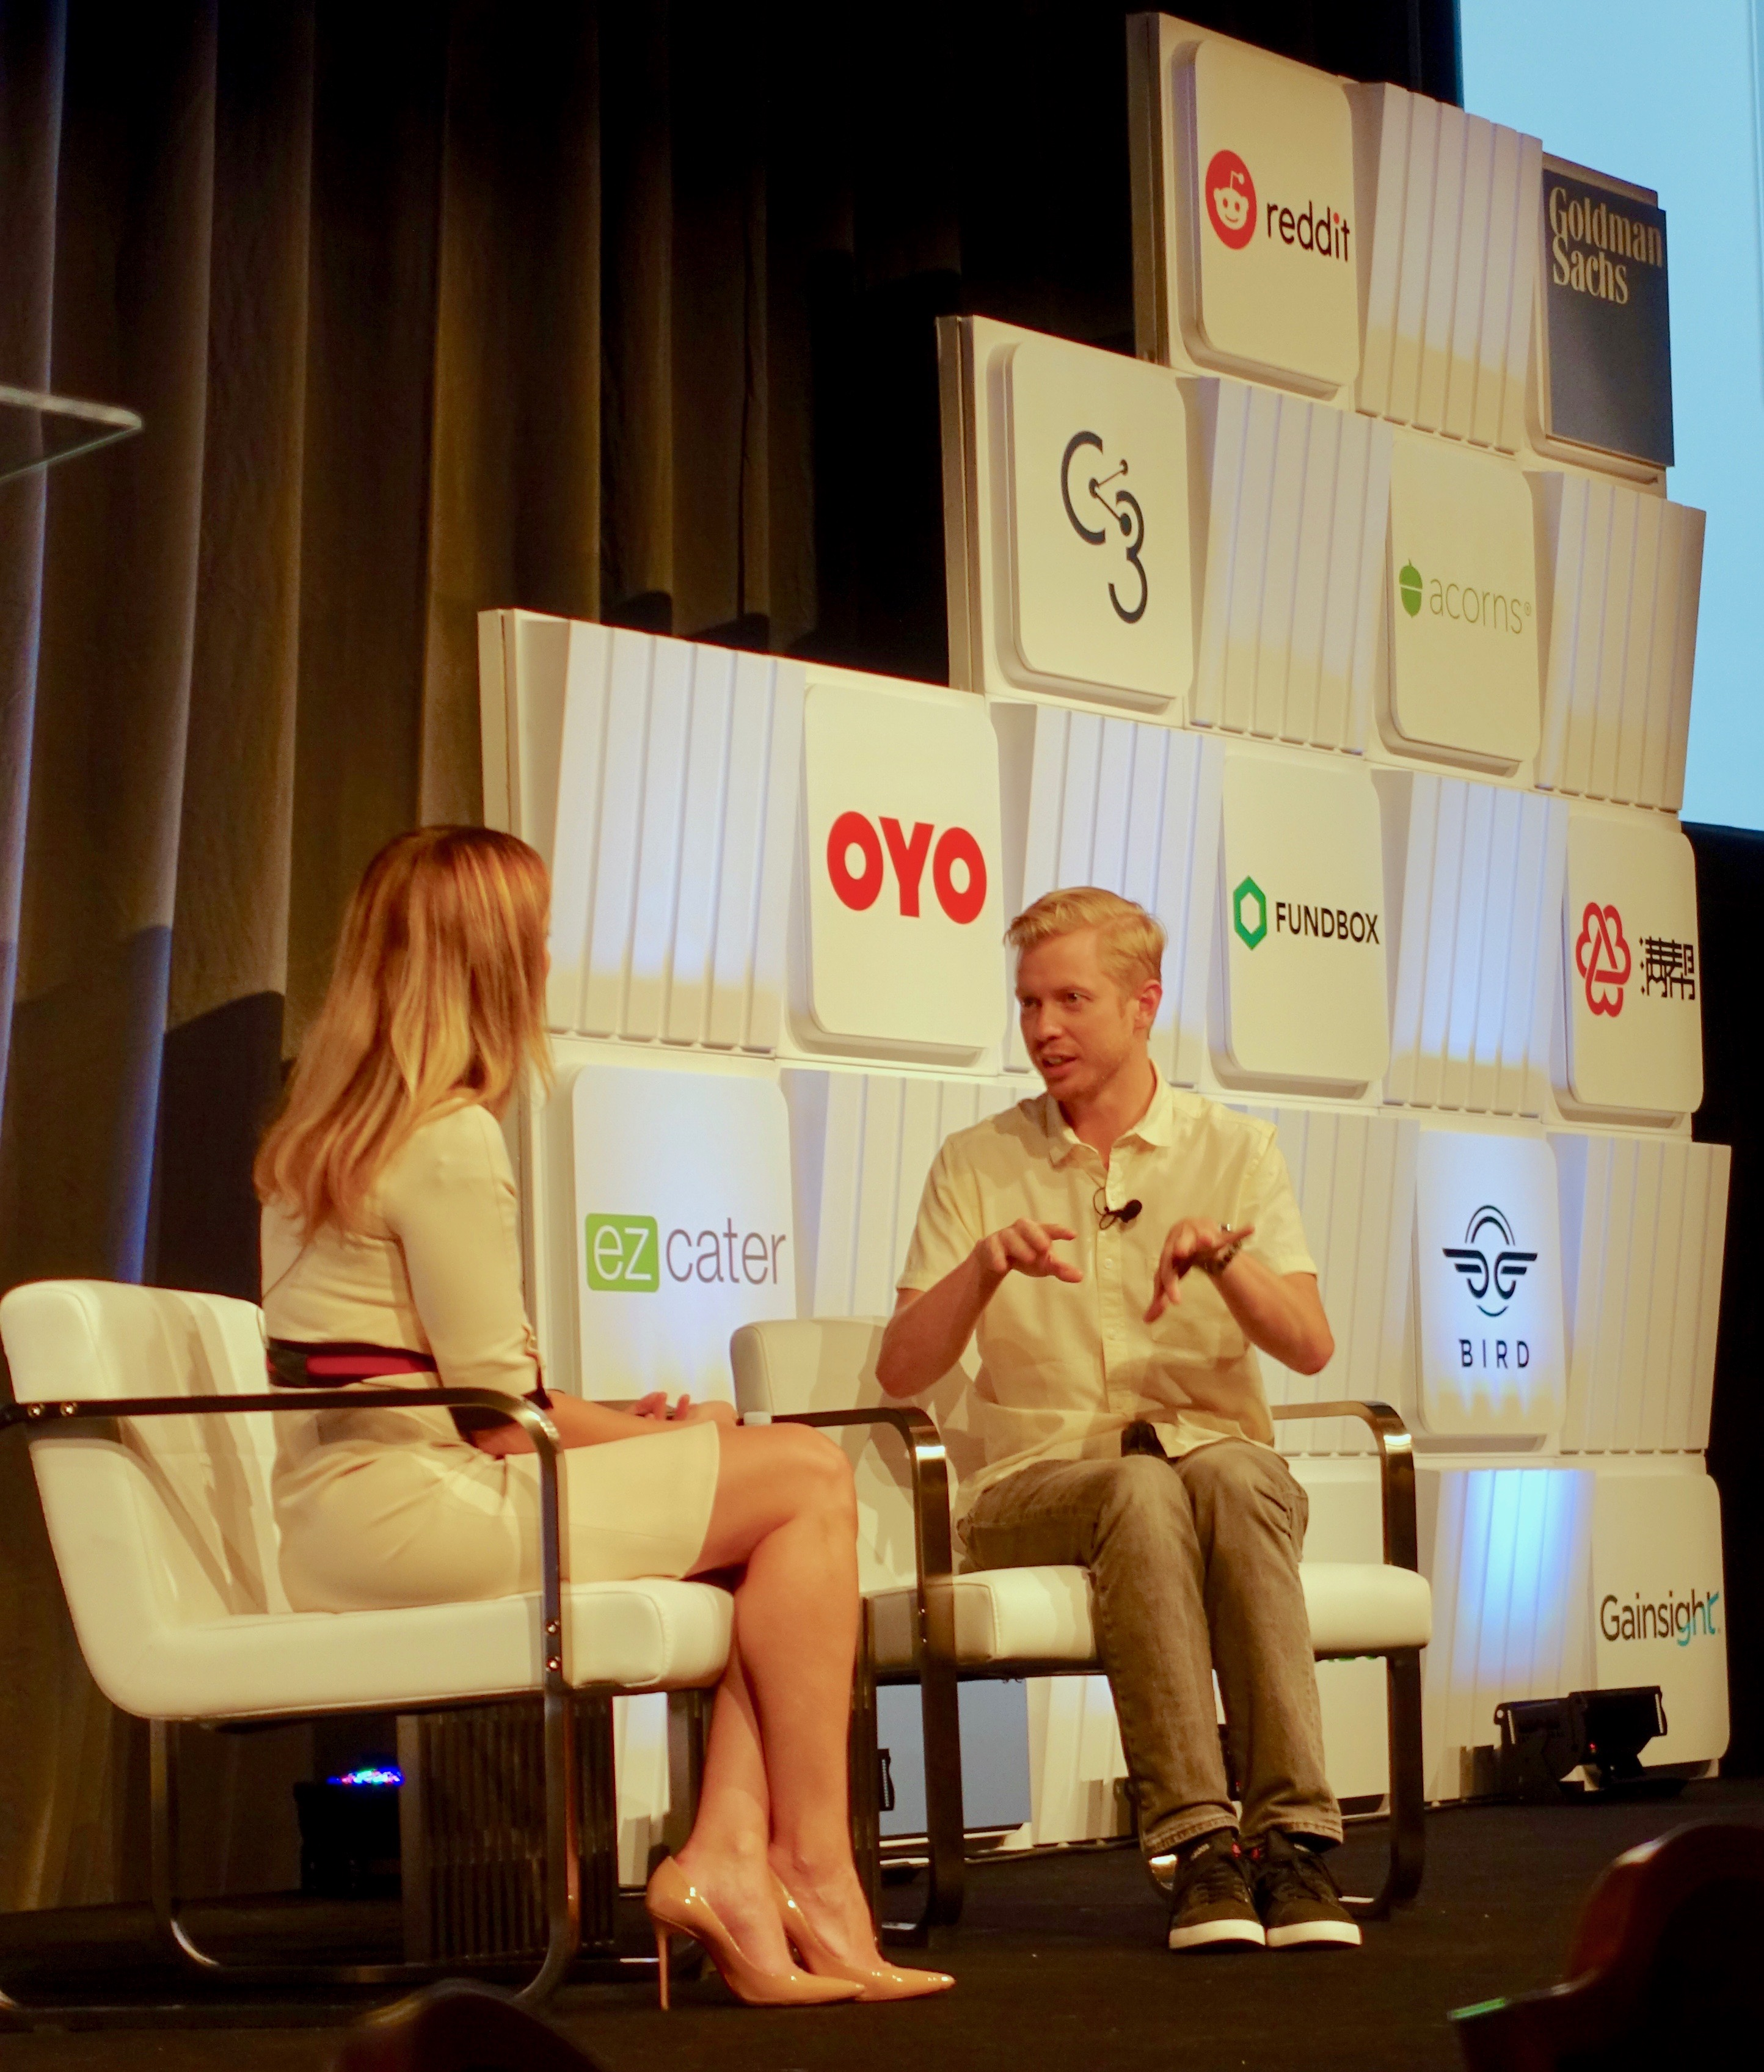 File:Reddit CEO Steve Huffman at the Goldman PICC jpg